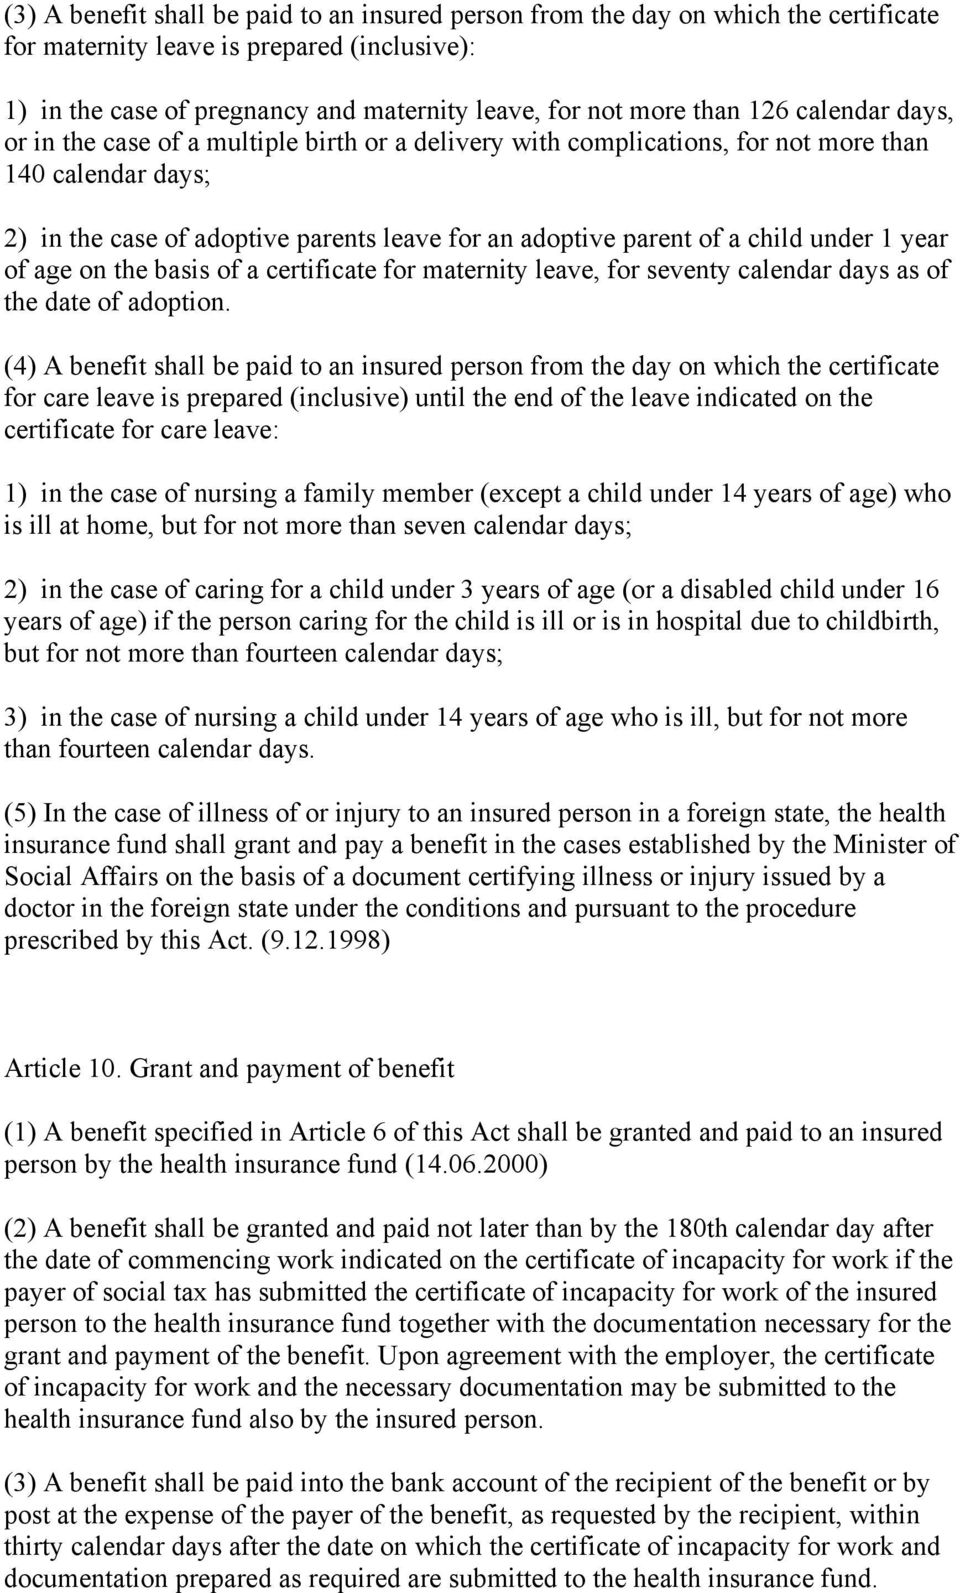 under 1 year of age on the basis of a certificate for maternity leave, for seventy calendar days as of the date of adoption.